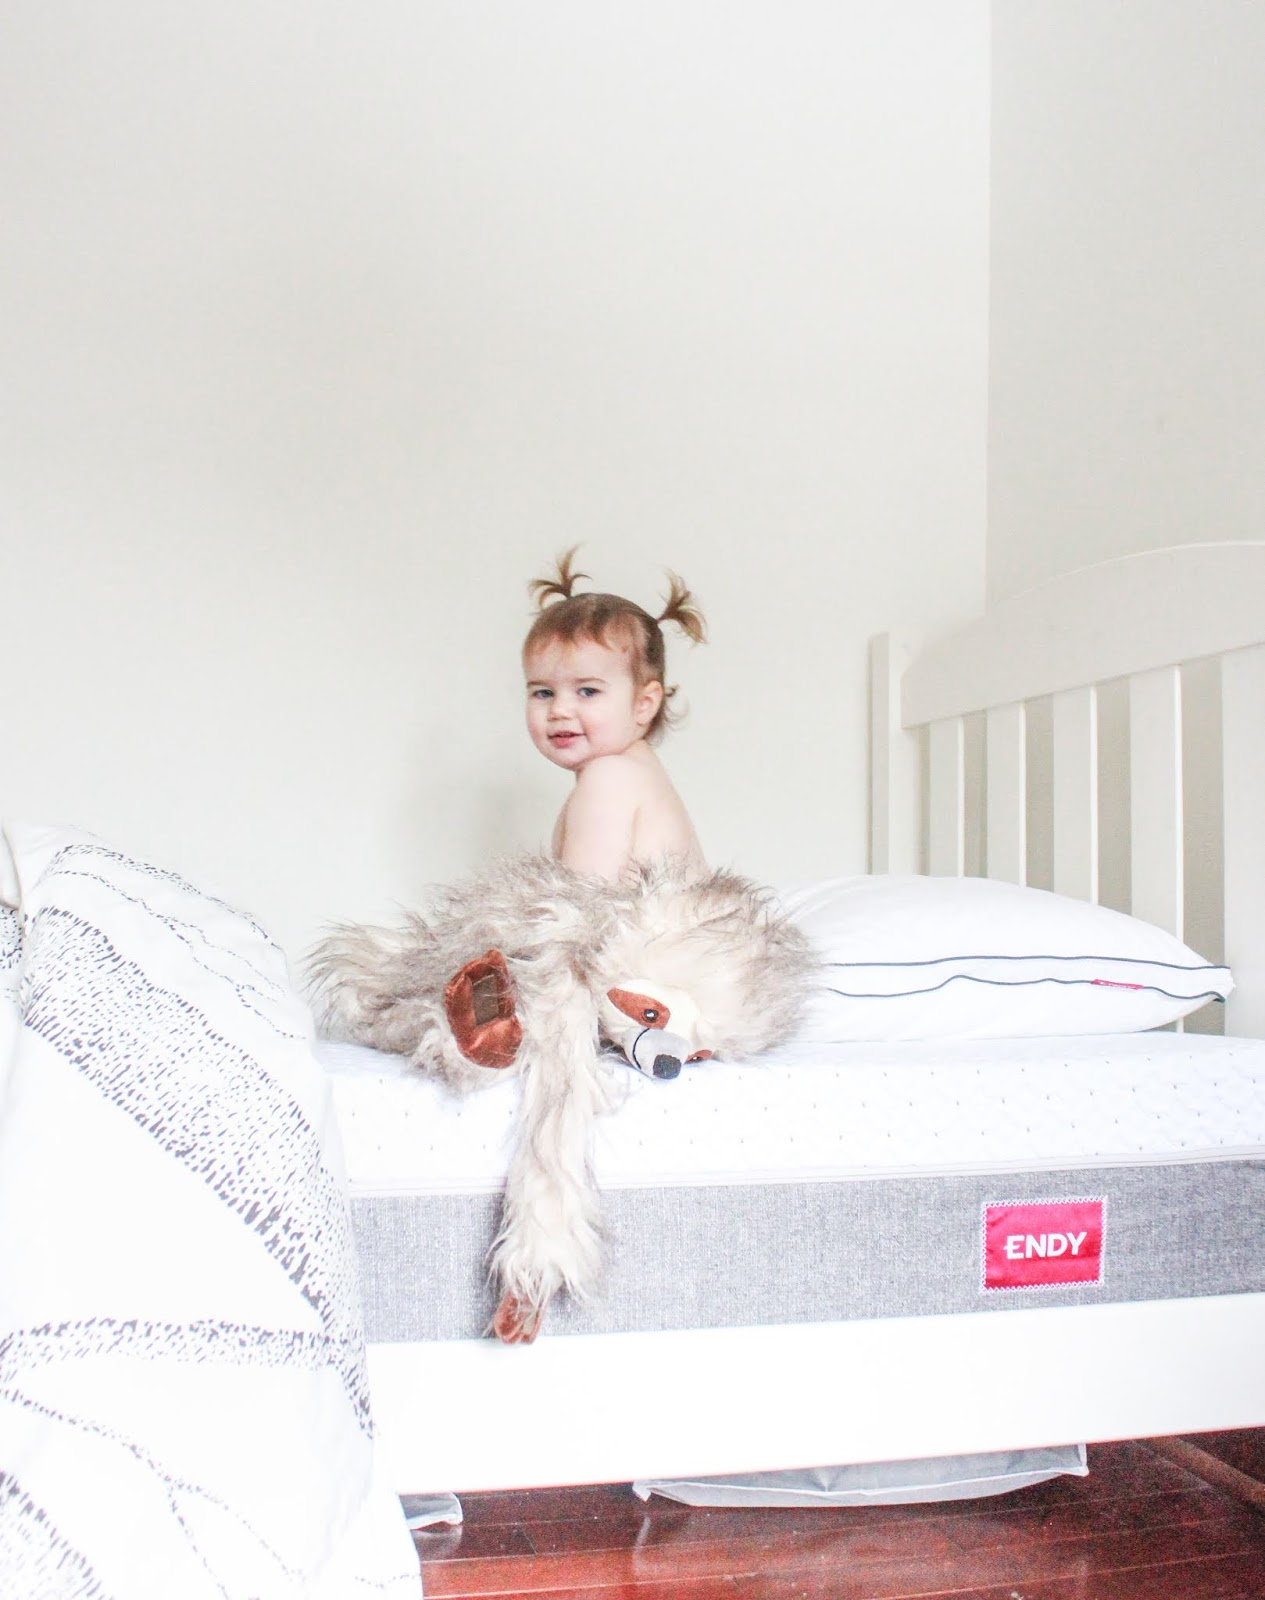 100 Night Endy Mattress Review, From an Honest Preschooler